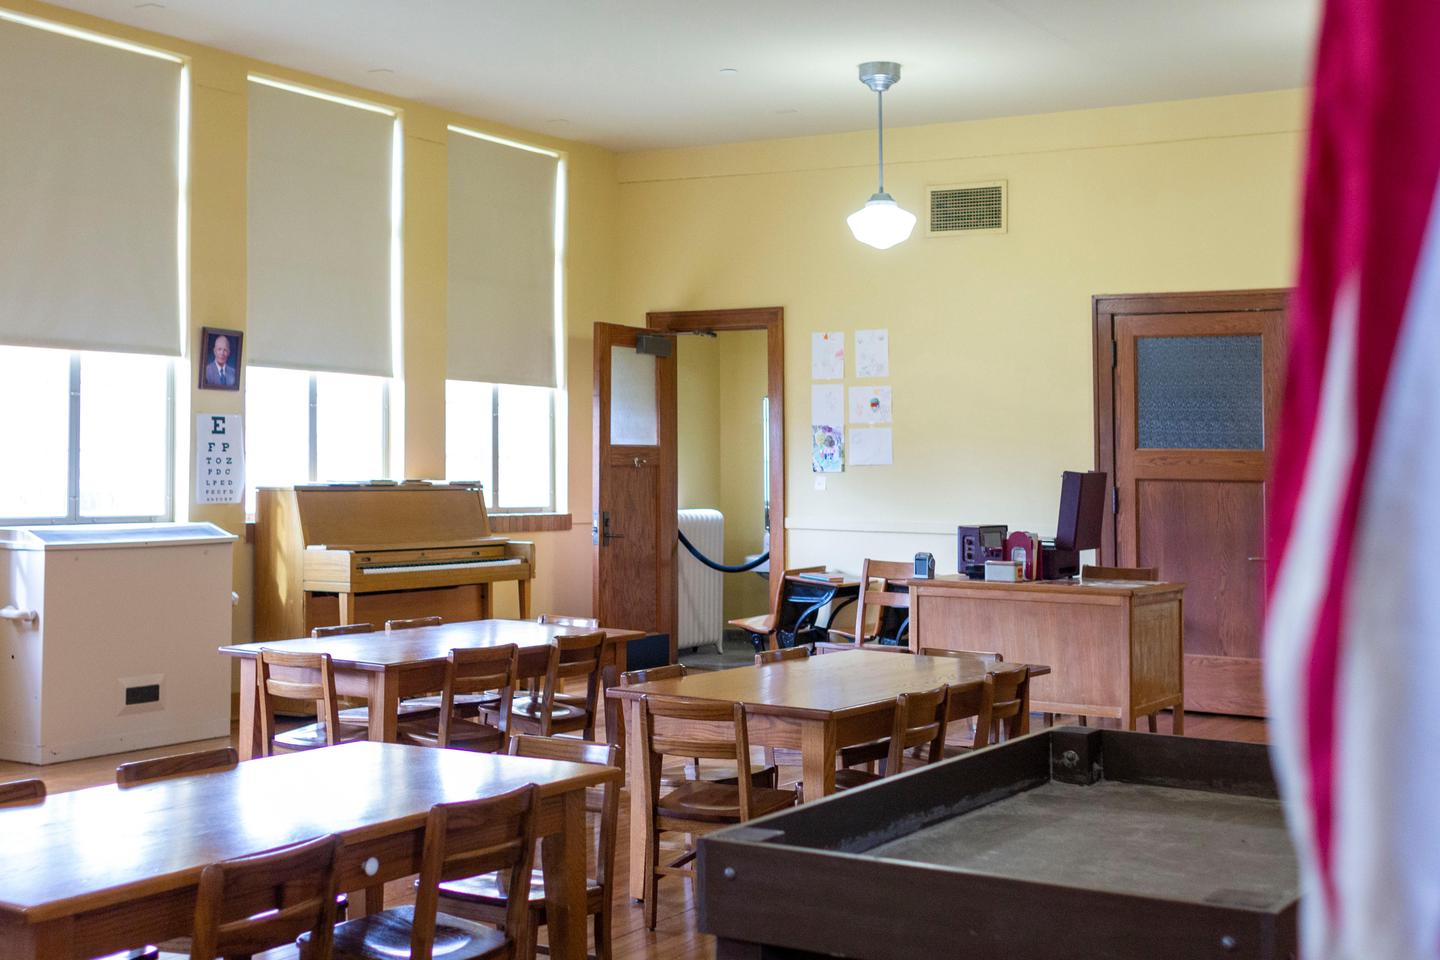 Monroe_School_Kindergarten_RoomThis Kindergarten room was the first school experience for many African American students in Topeka.